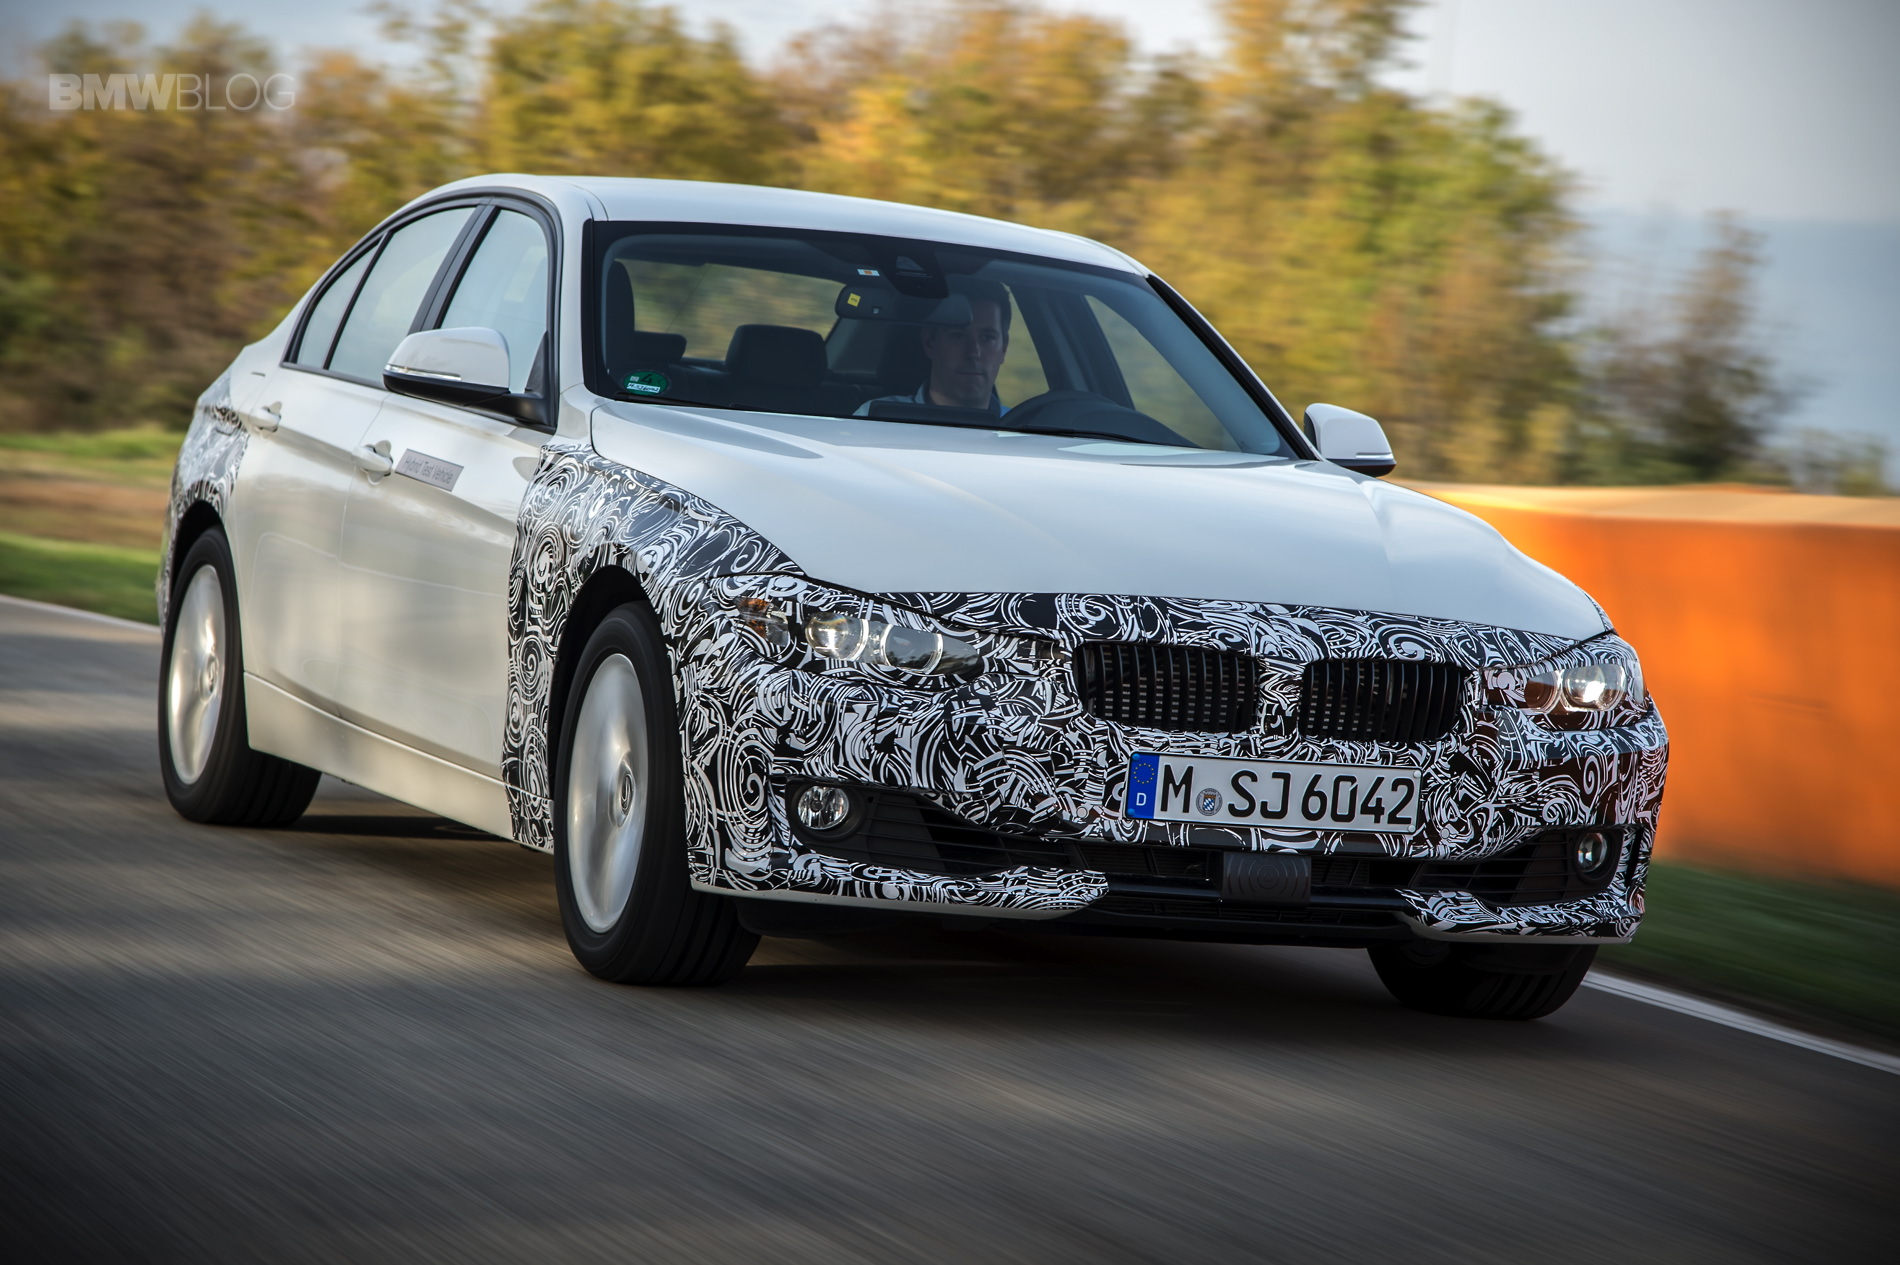 2019 BMW 2019 turbo photo - 4